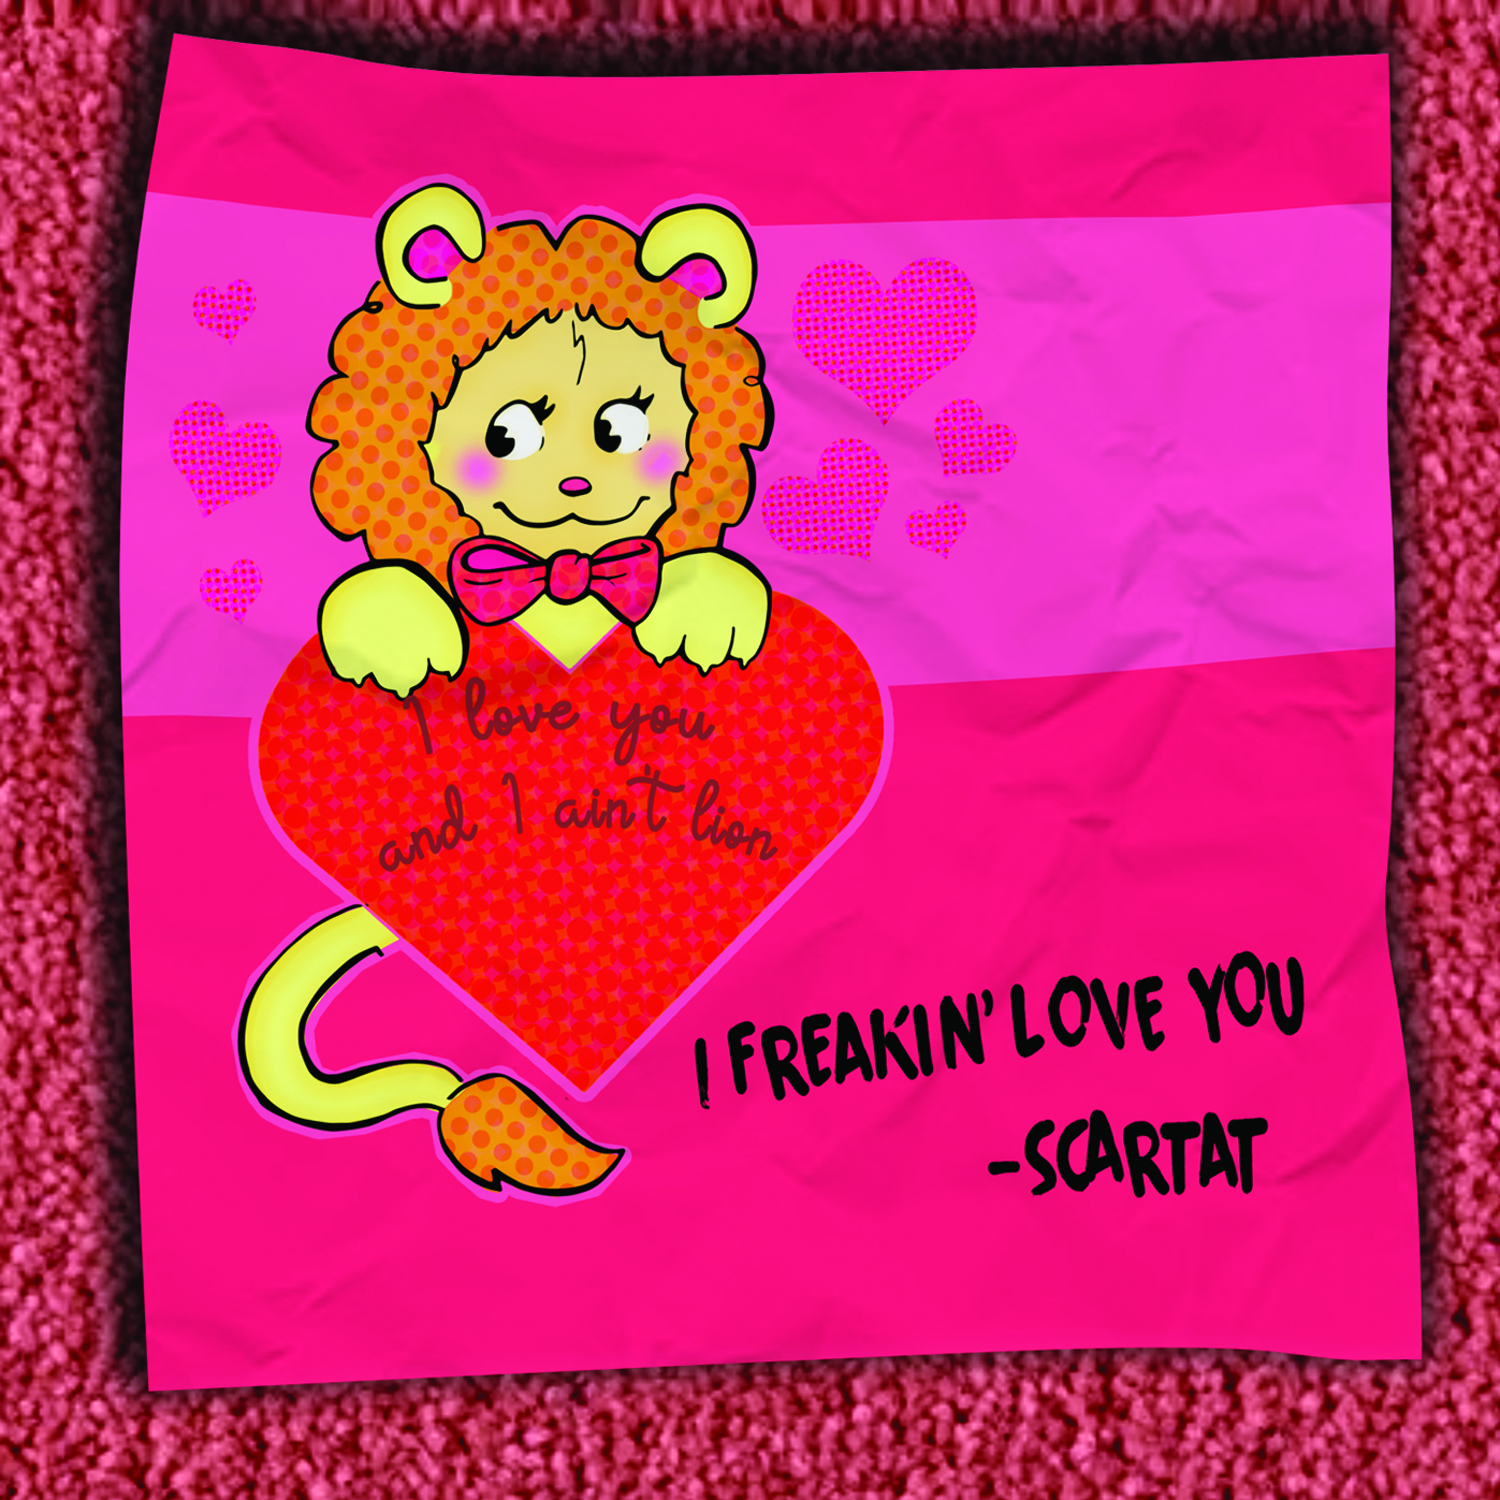 [KFA109] Scartat - I Freakin' Love You EP (CD + Digital)